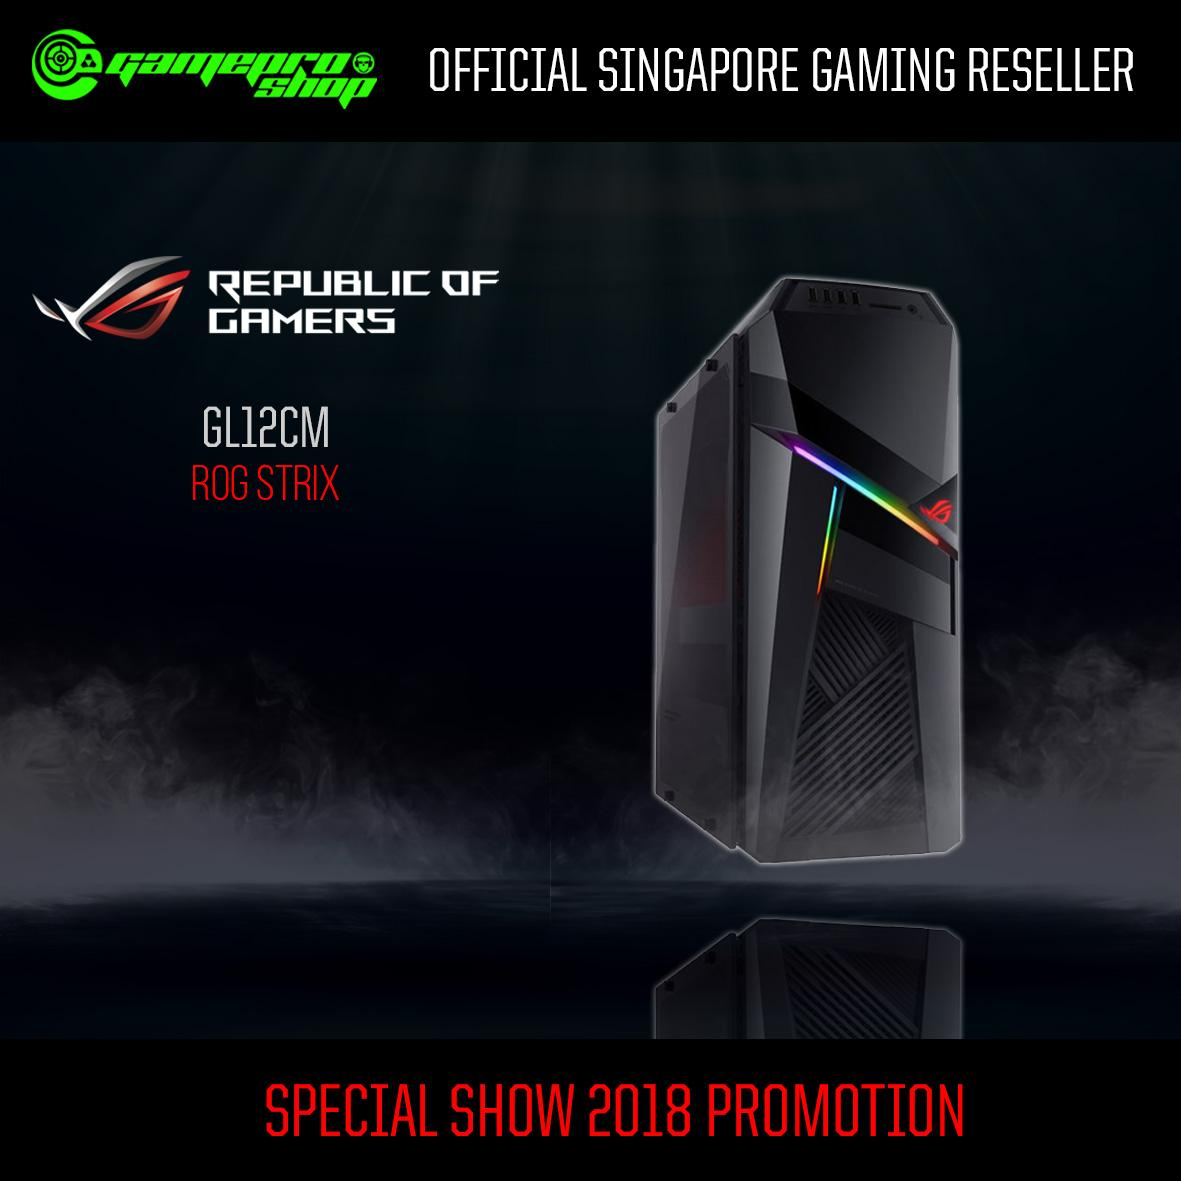 8th Gen ASUS ROG Strix GL12CM – SG010T (I7-8700 16GB 1TB+256GB SSD GTX1060) *END OF MONTH PROMO*